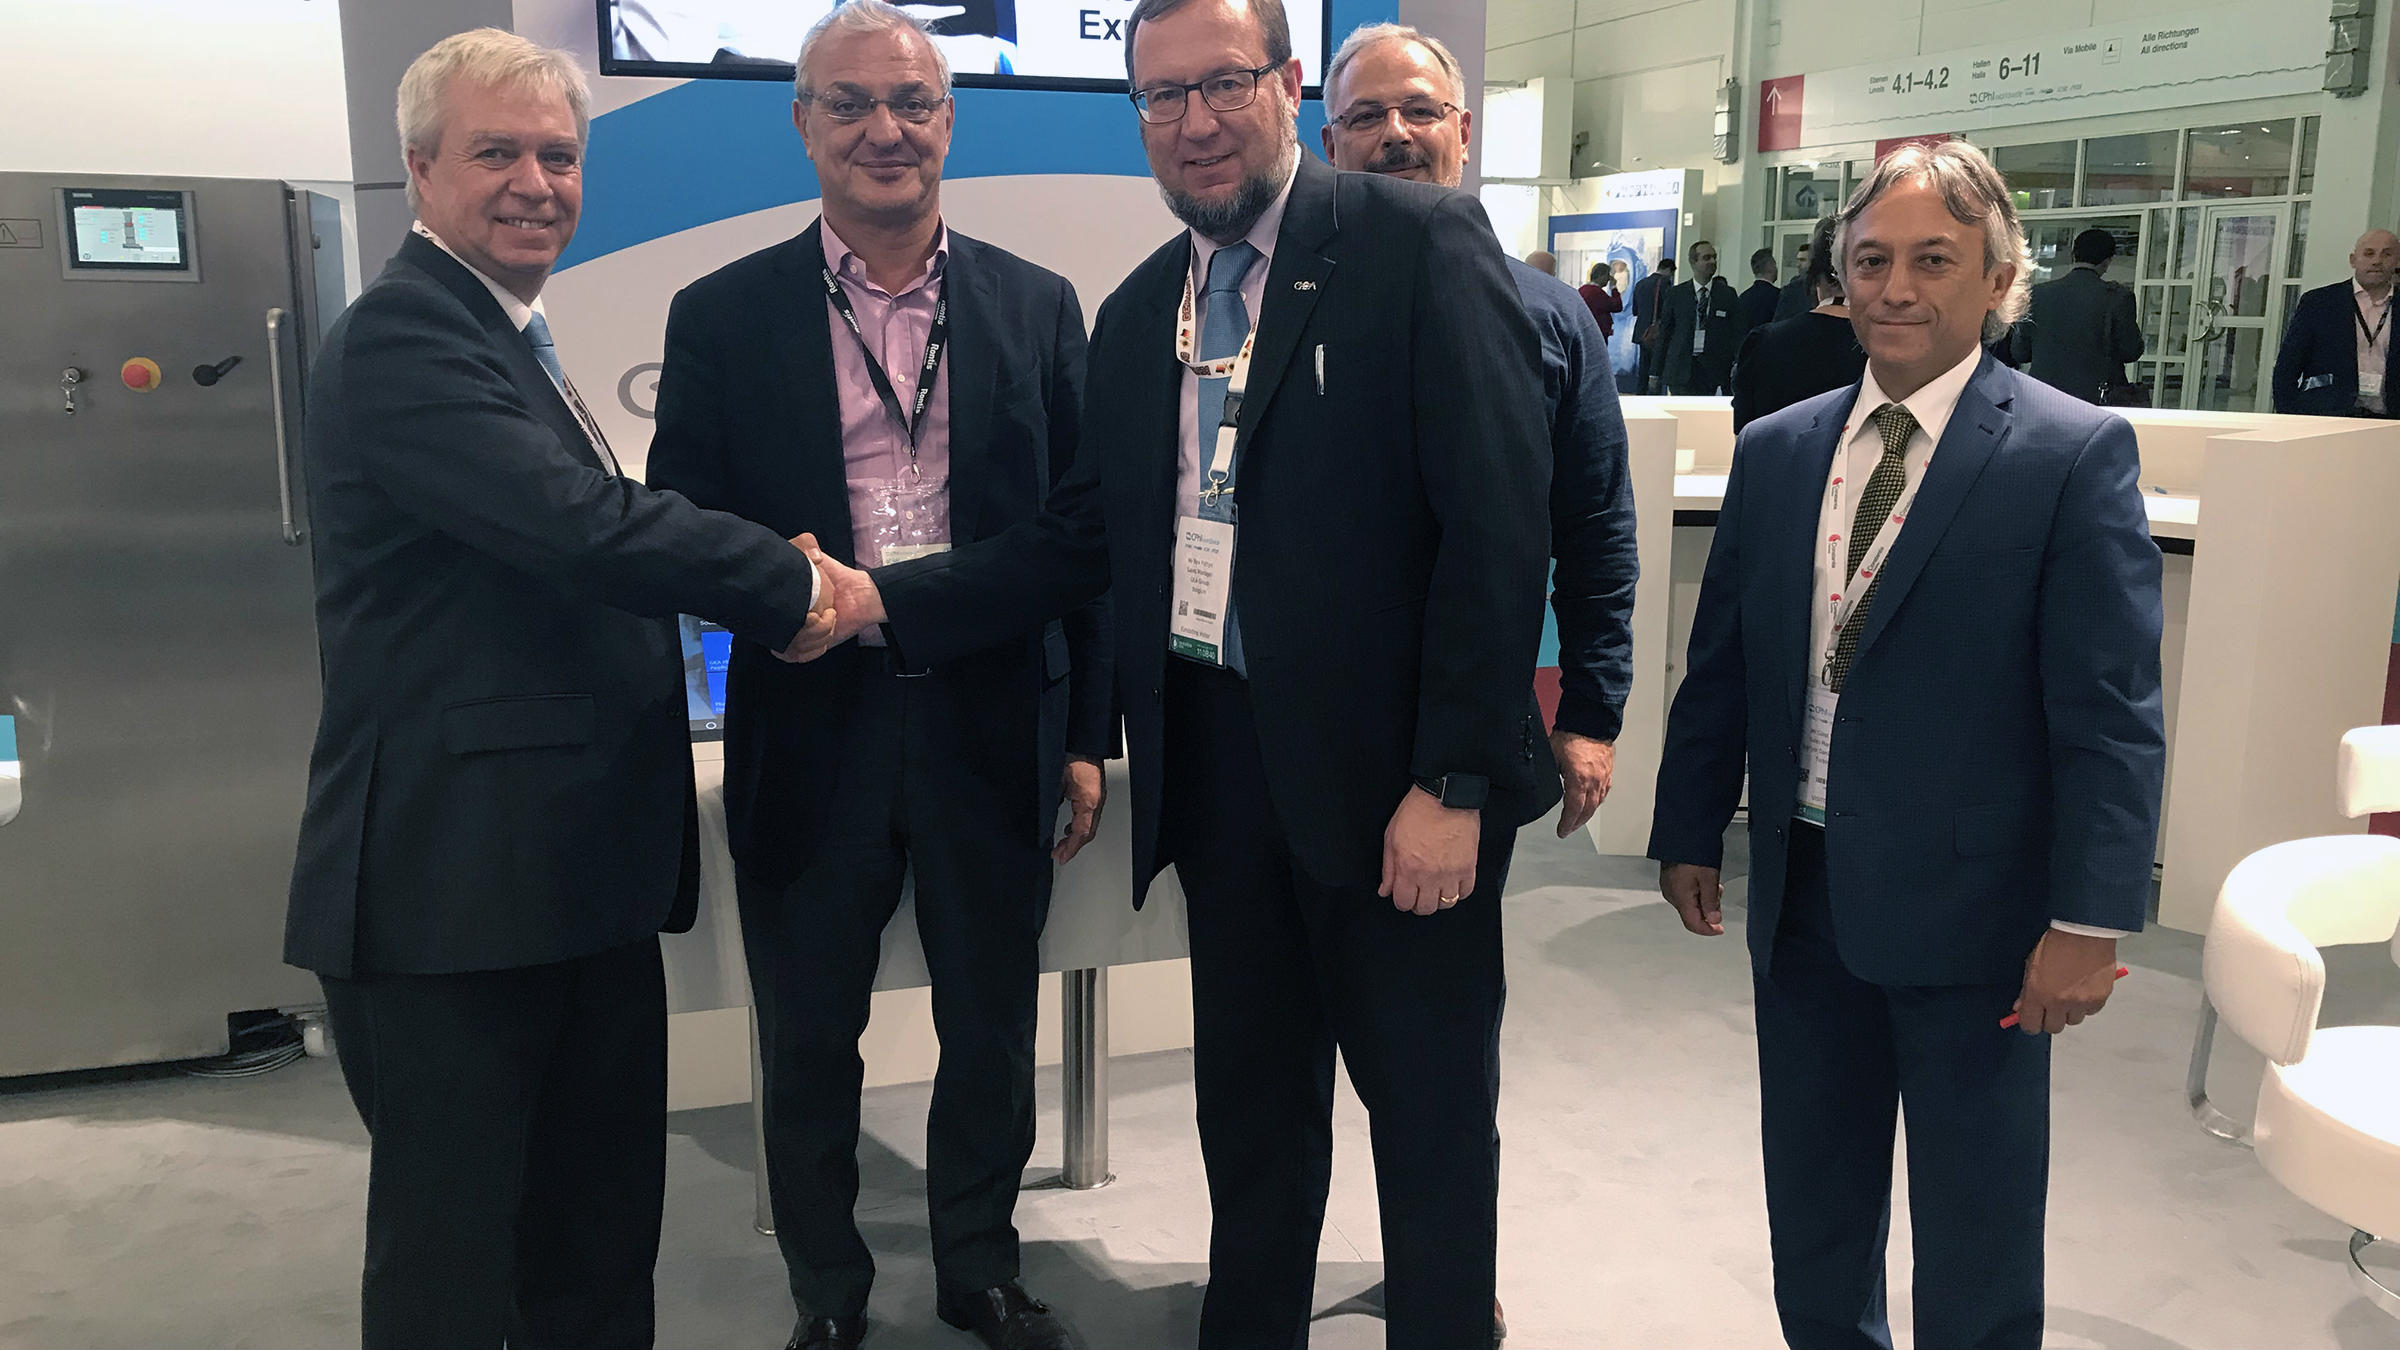 GEA seals the deal with farmatek as new customer at CPhI Worldwide